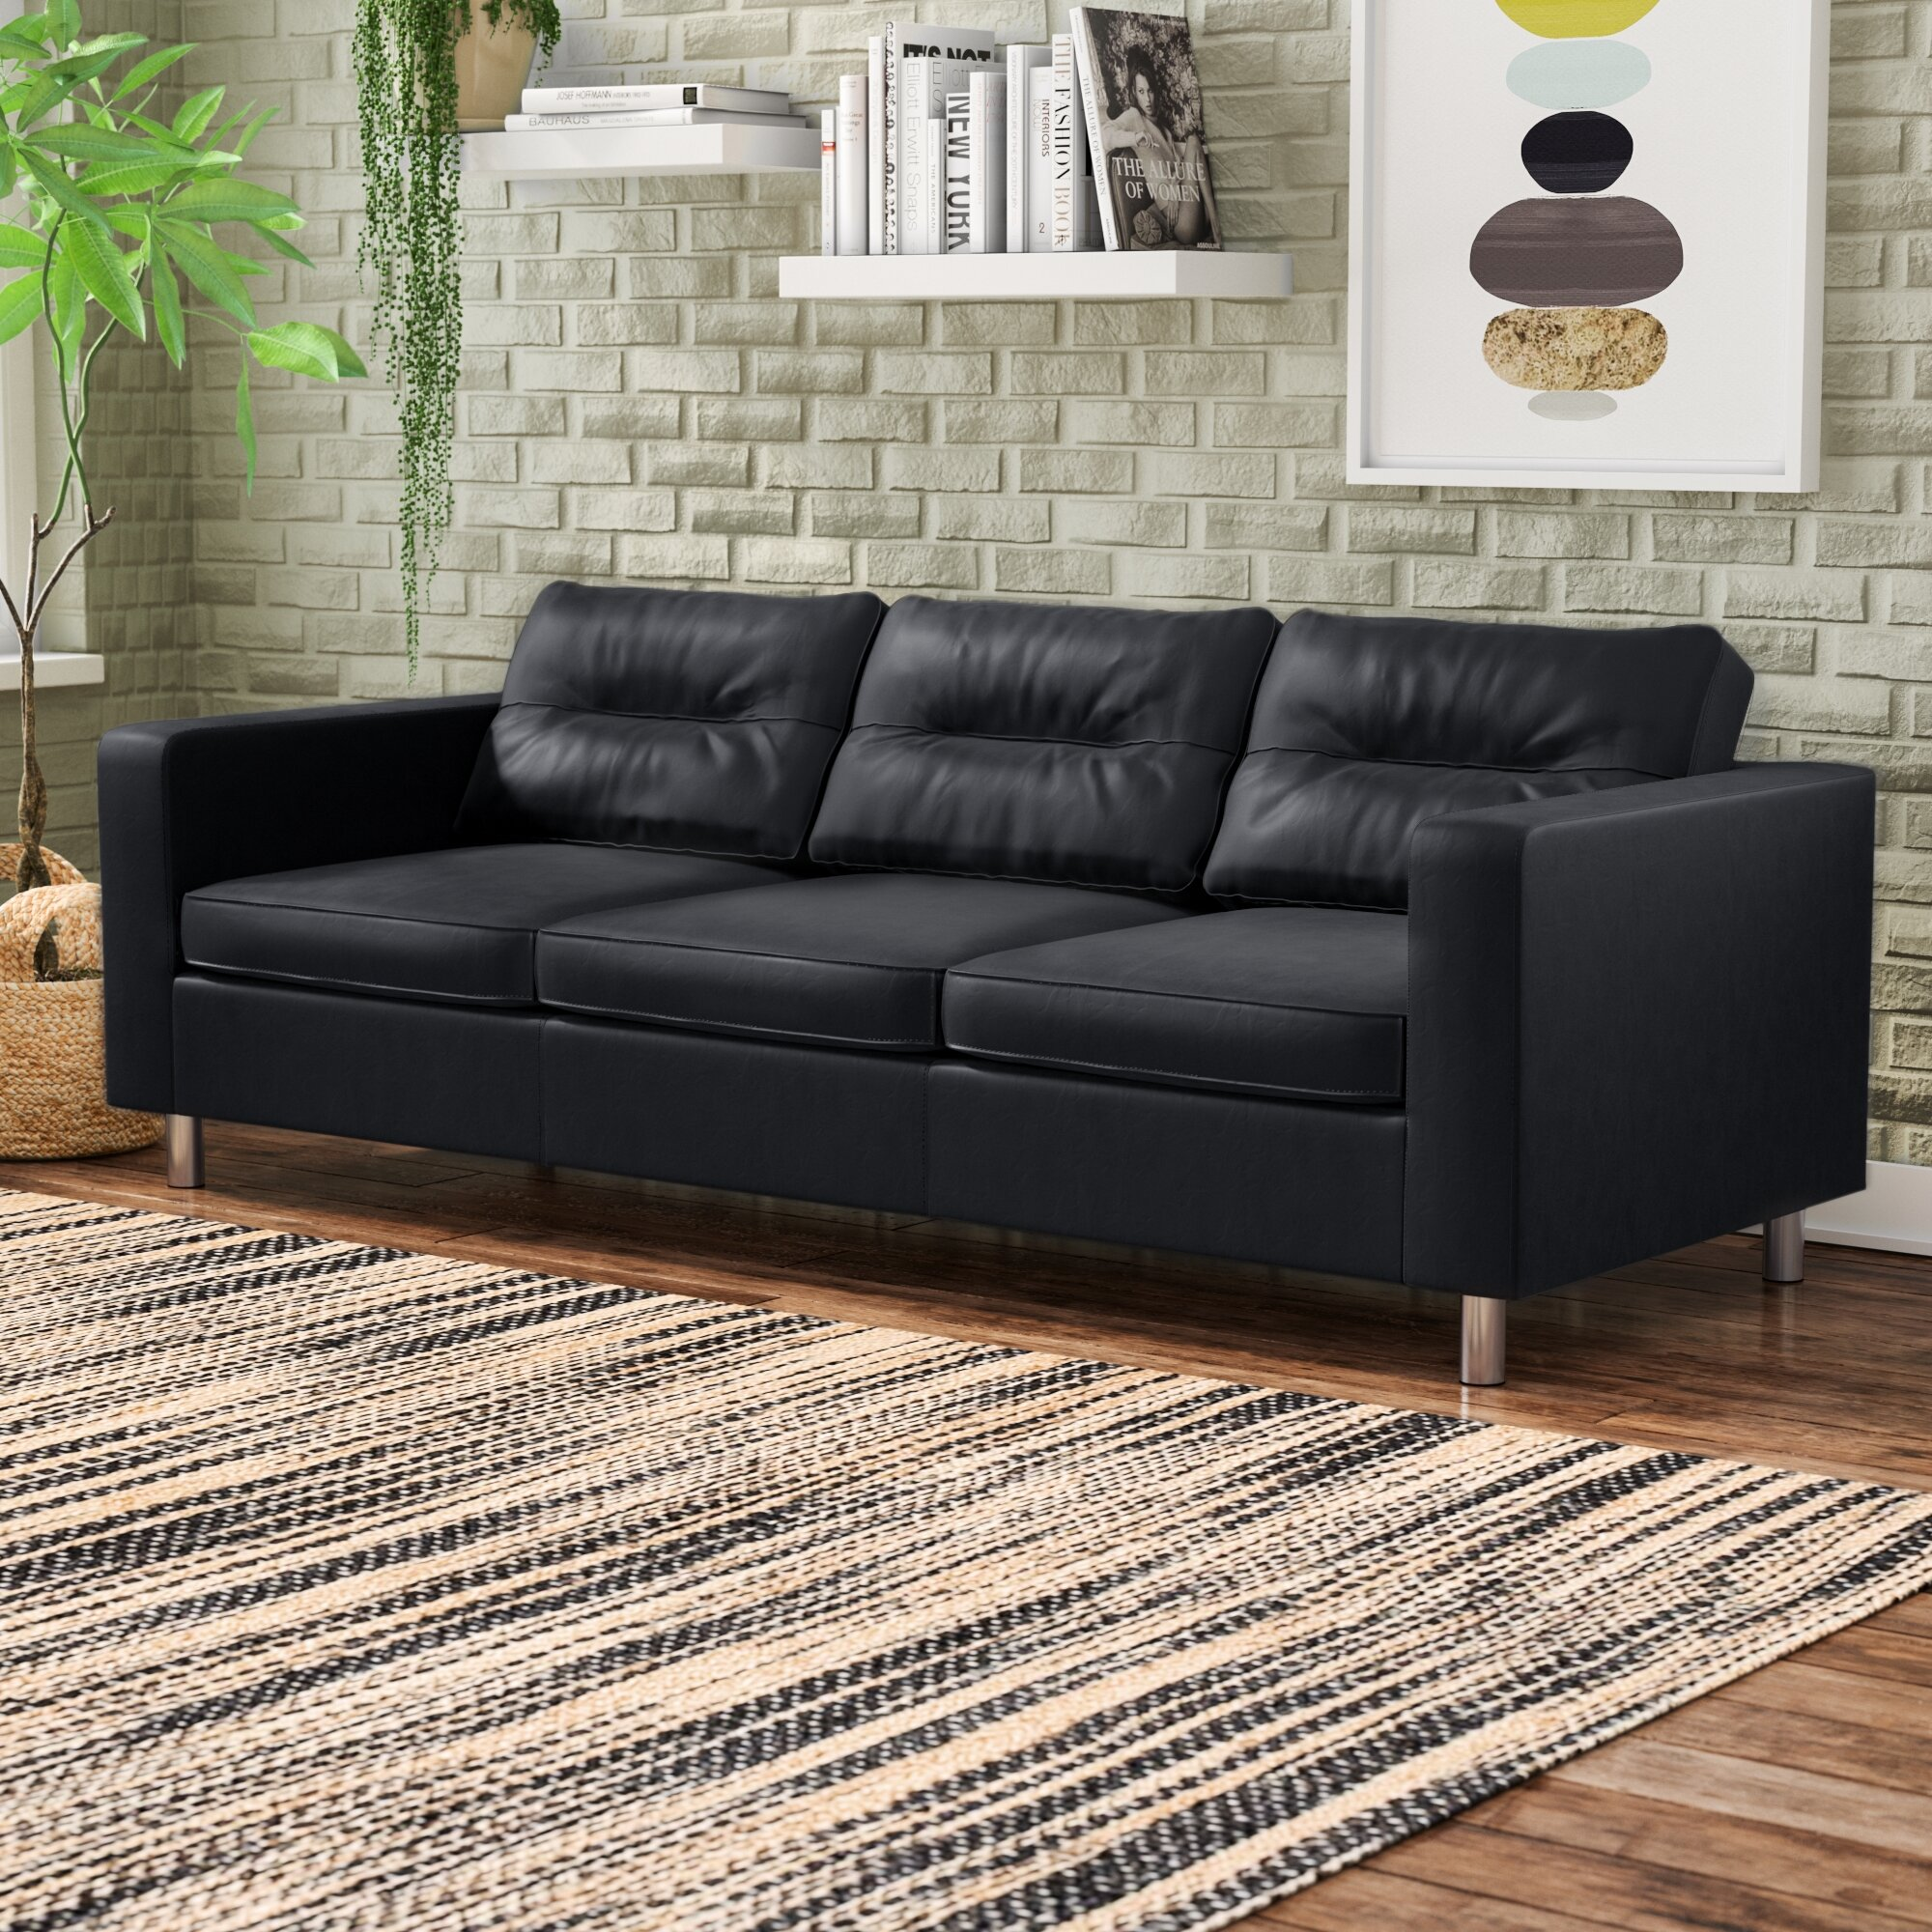 Tremendous Clarence Sofa Ncnpc Chair Design For Home Ncnpcorg